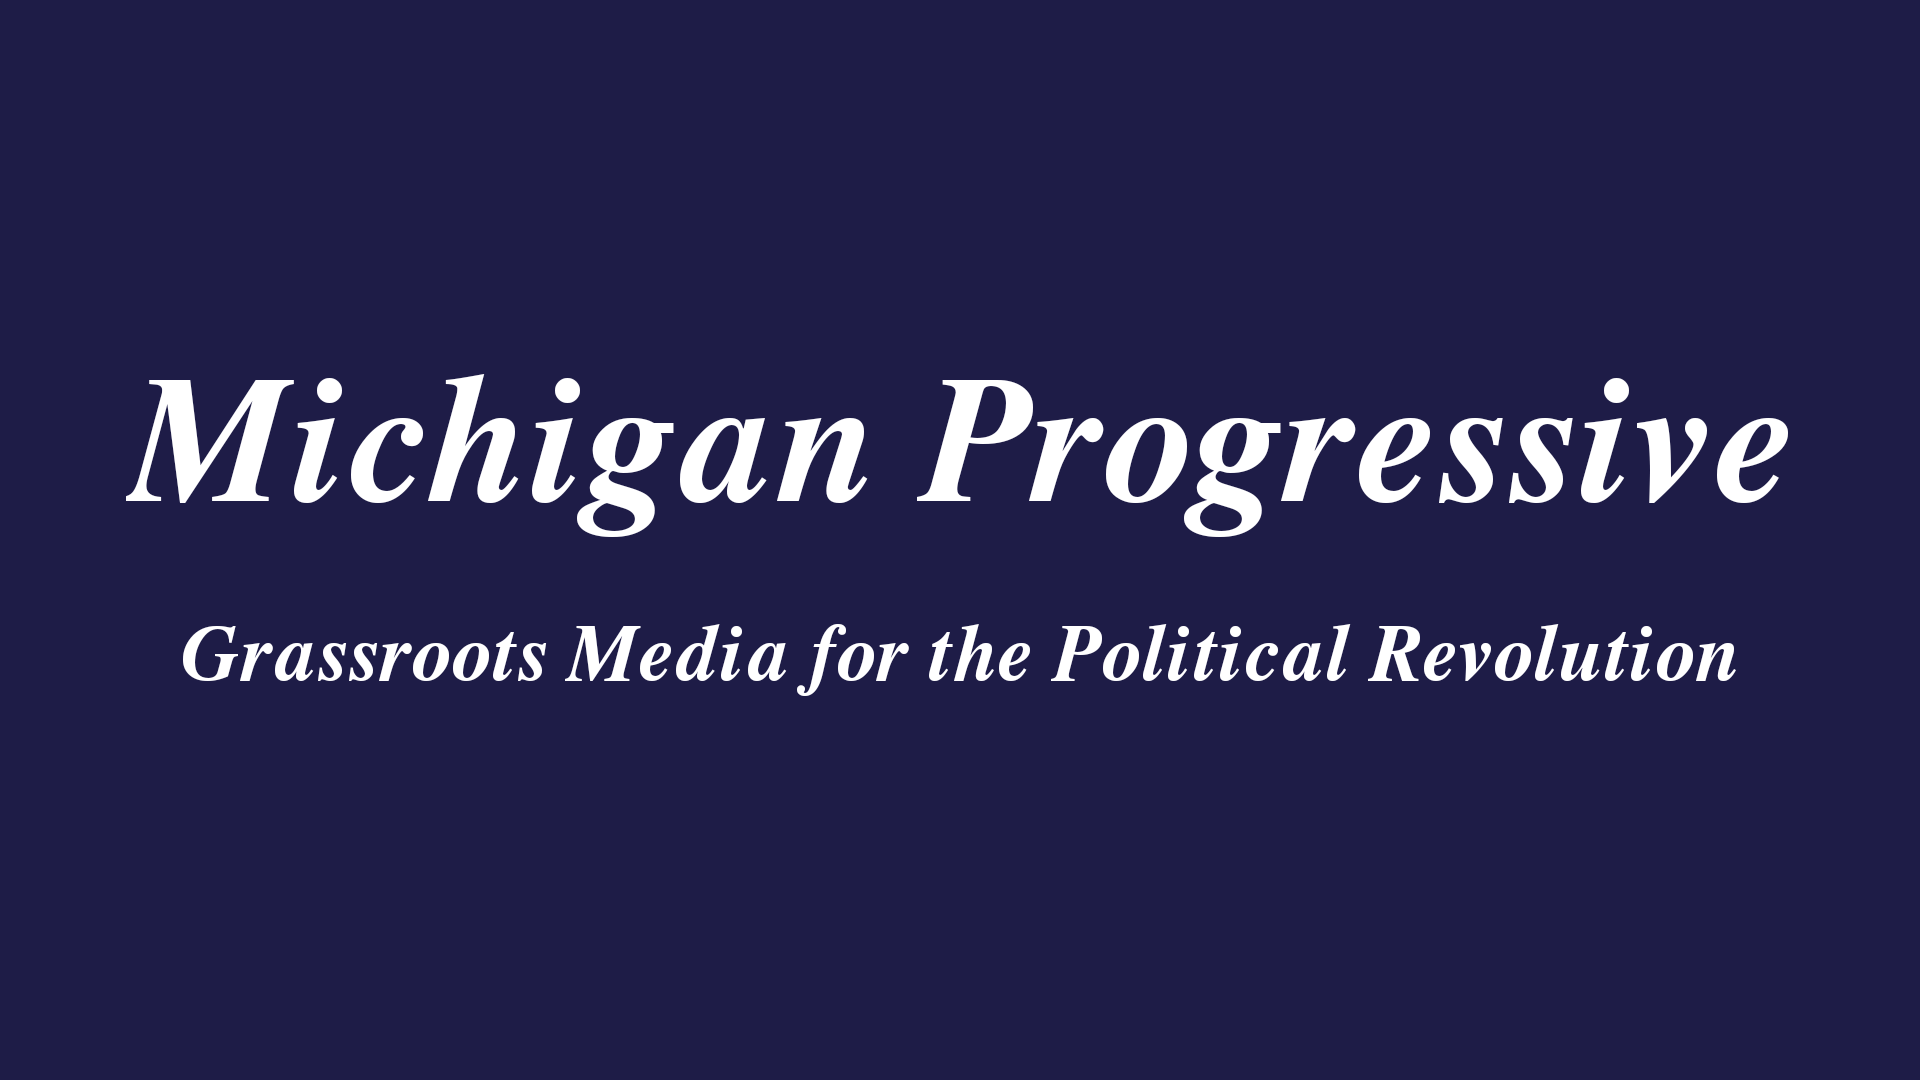 Michigan Progressive